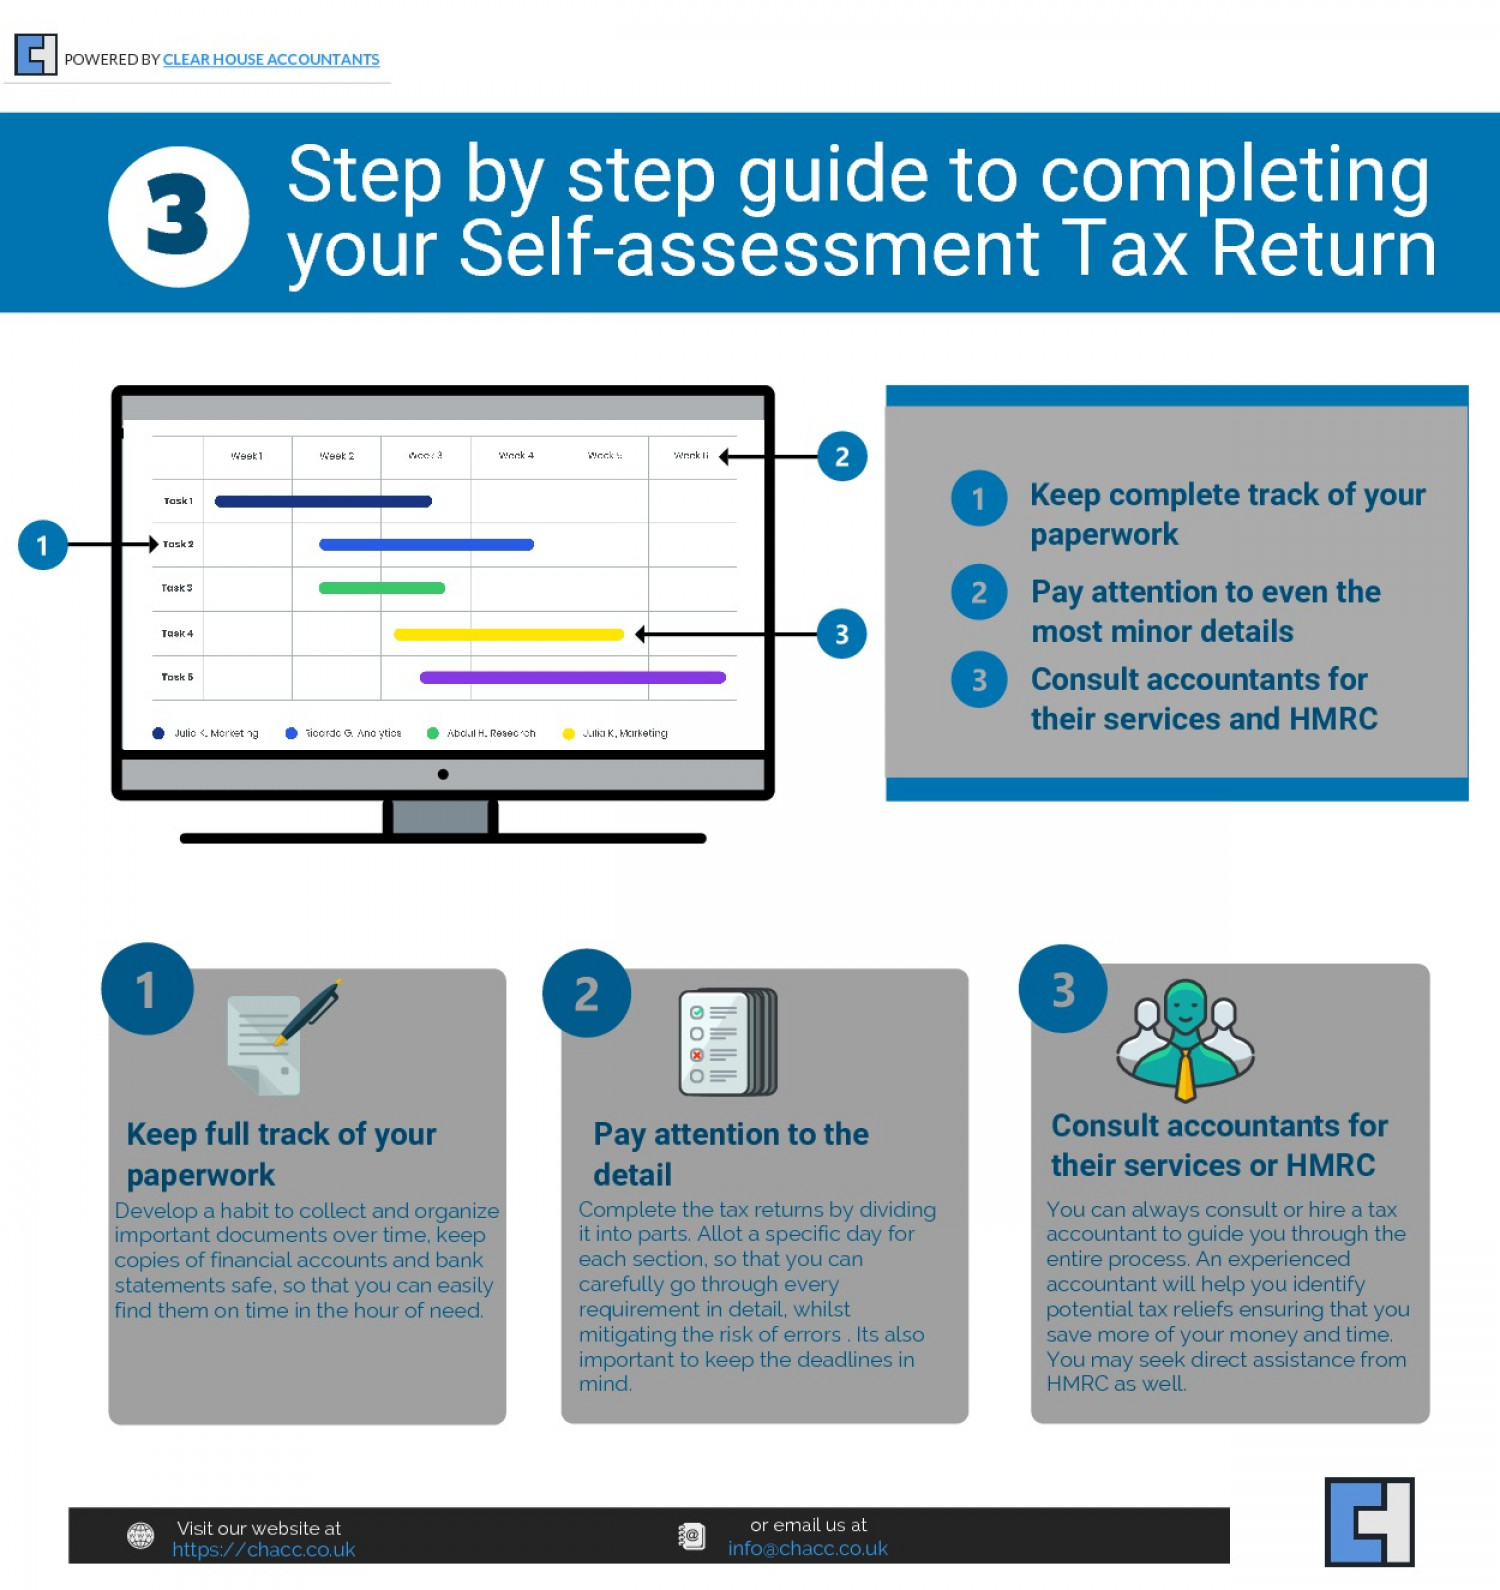 How To Complete Your Self Assessment Tax Return - Step By Step Guide Infographic